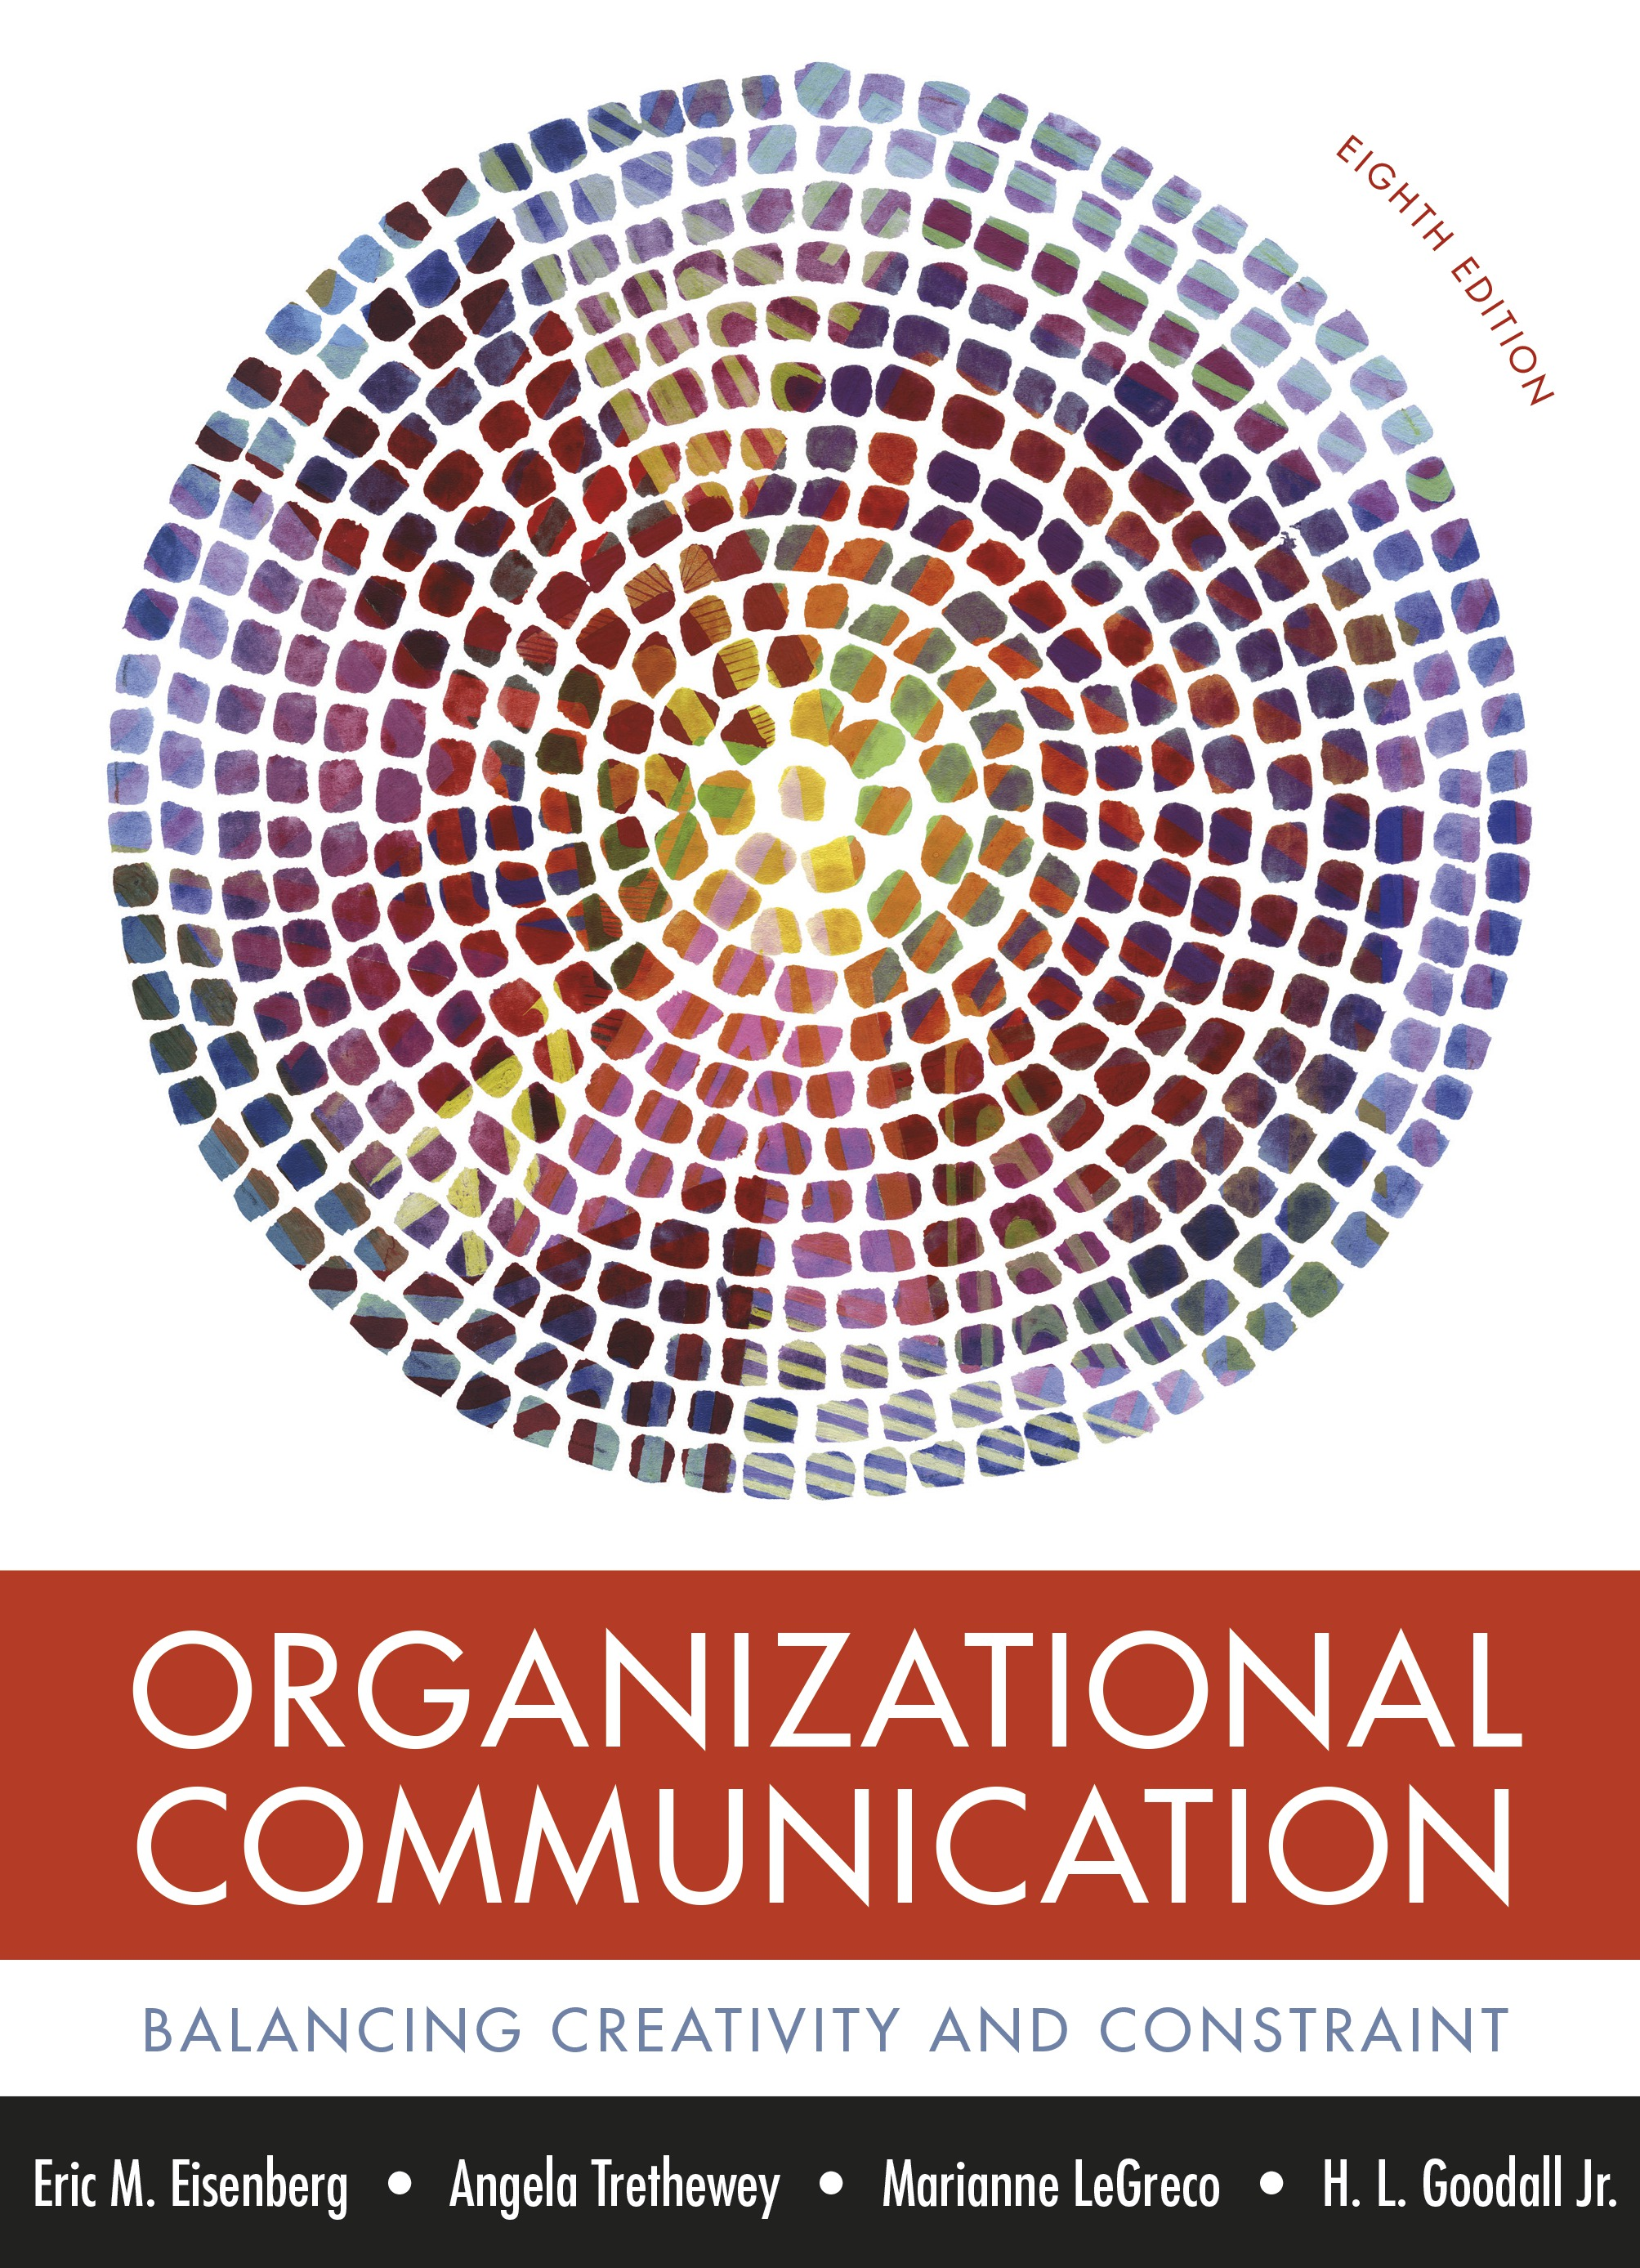 Organizational Communication 9781319052348 Macmillan